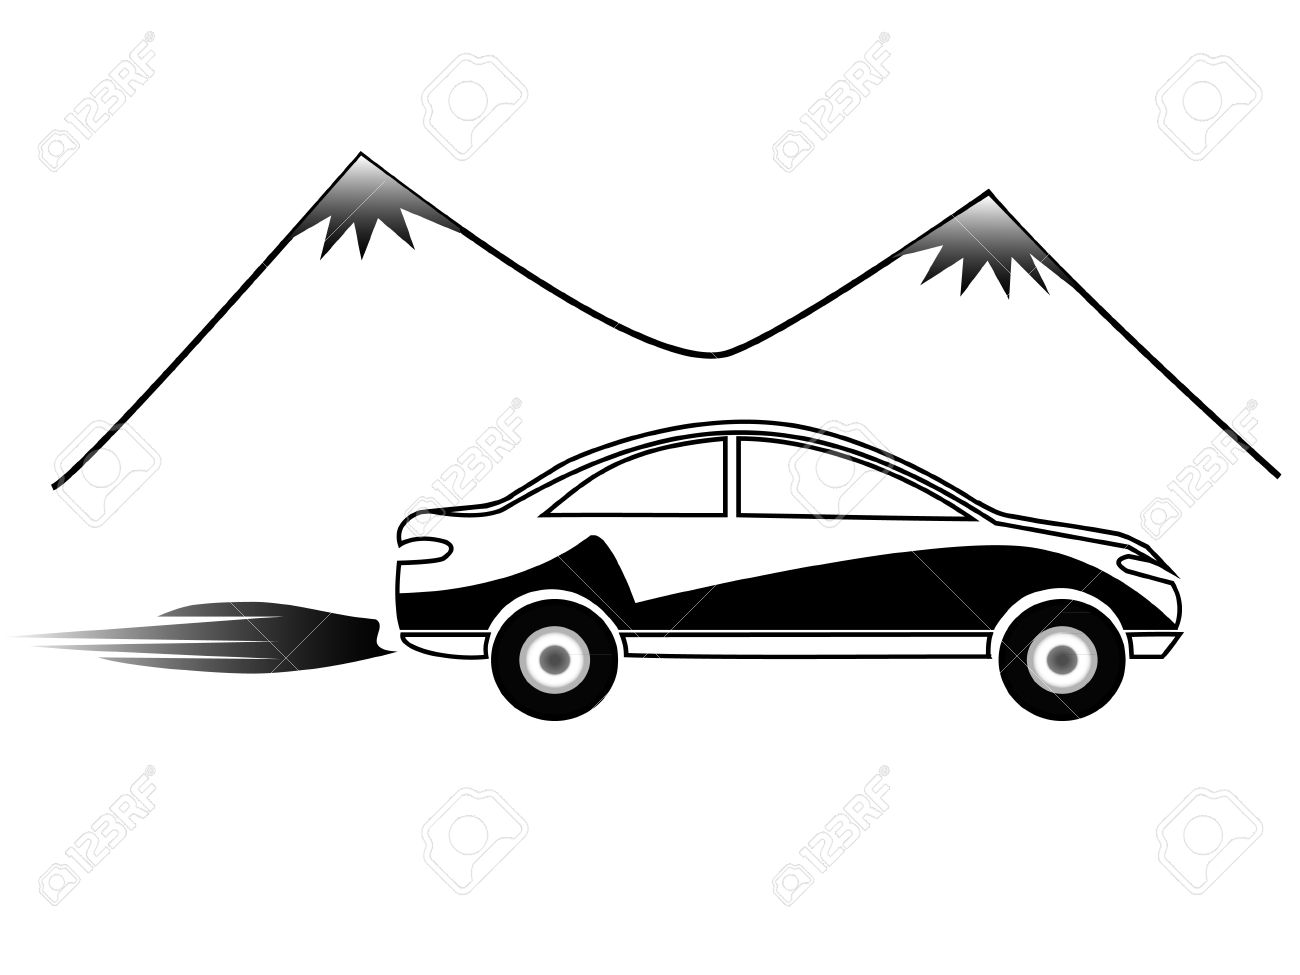 Car And Mountains Silhouettes Royalty Free Cliparts, Vectors, And.